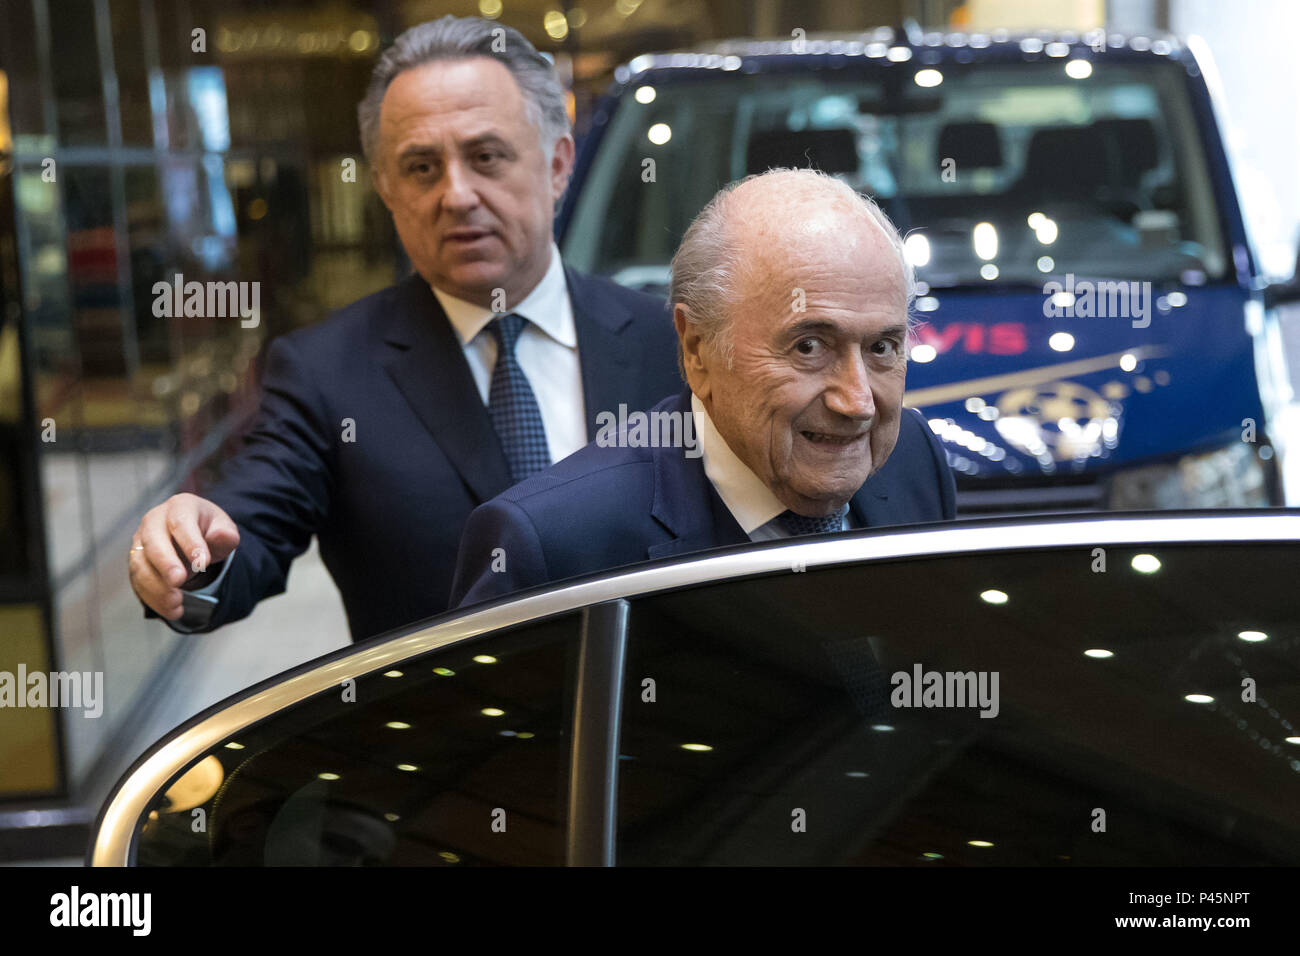 Vitaly Leontiyevich Mutko Deputy Prime Minister of Russia and former FIFA president Joseph 'Sepp' Blatter exit The St Regis Hotel together in Moscow. - Stock Image